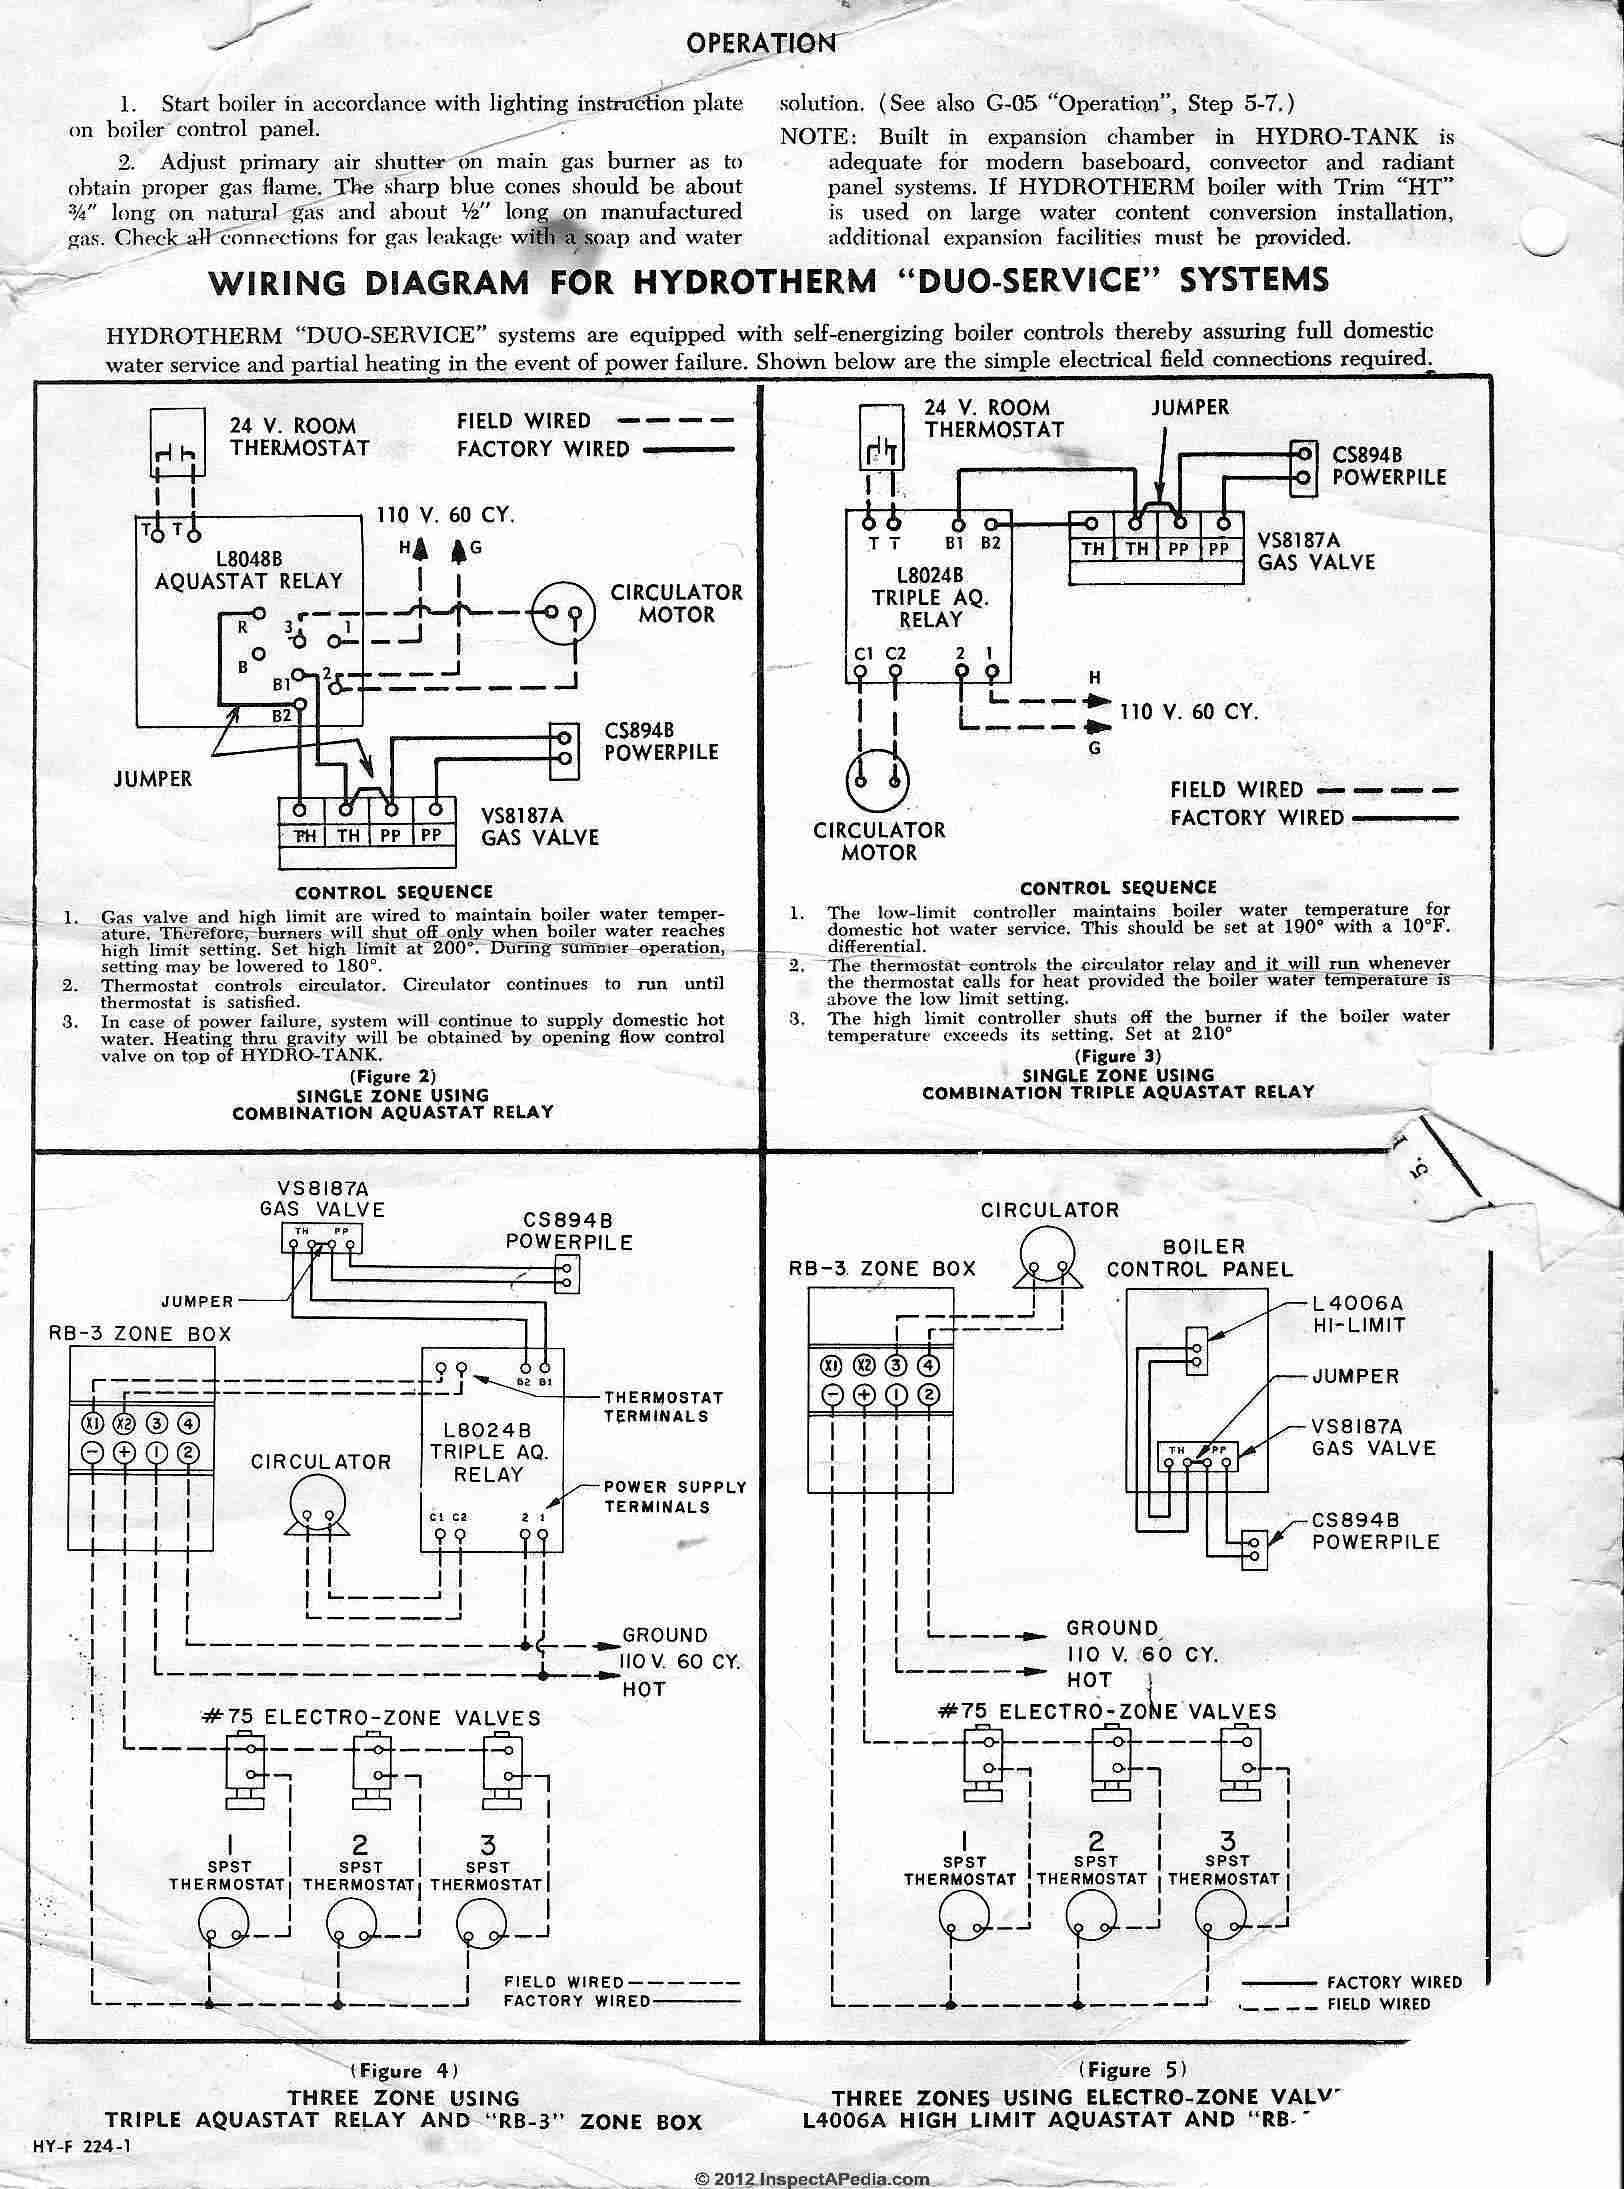 L8024B_Aquastat_0422_DJFcs honeywell l7224 wiring diagram honeywell l7224u aquastat wiring honeywell pressure switch wiring diagram at love-stories.co